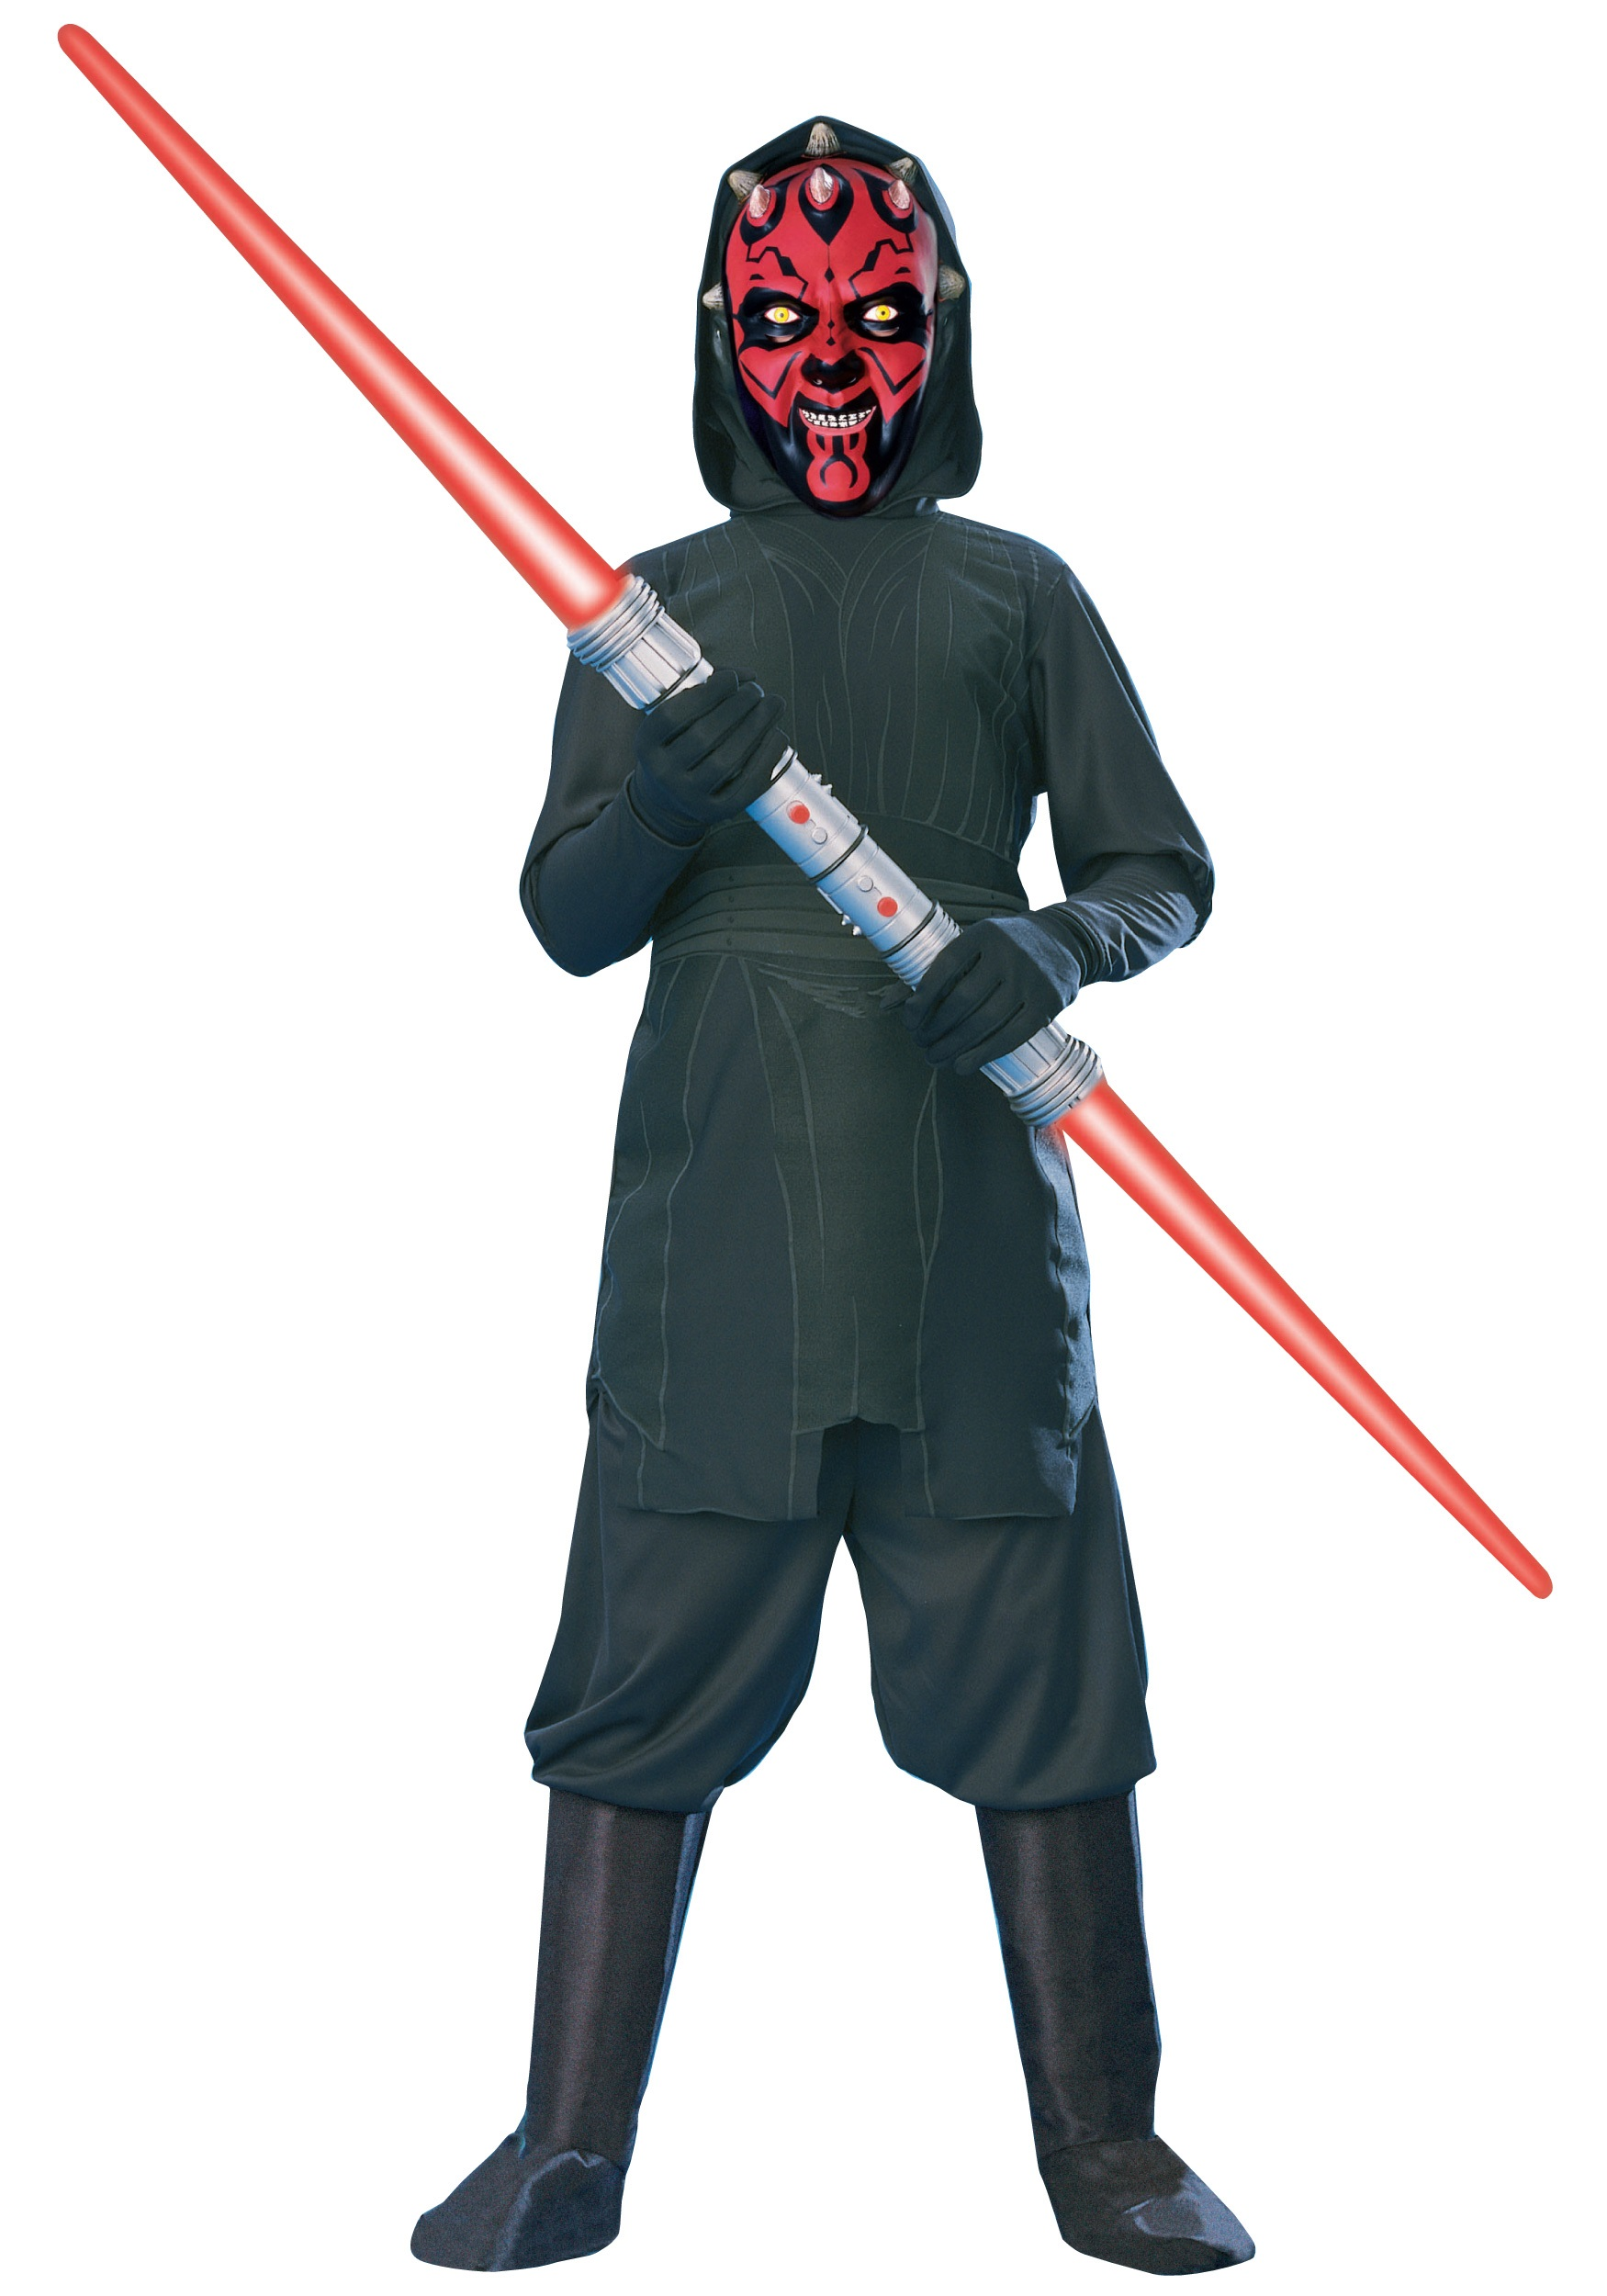 Darth Maul Costumes